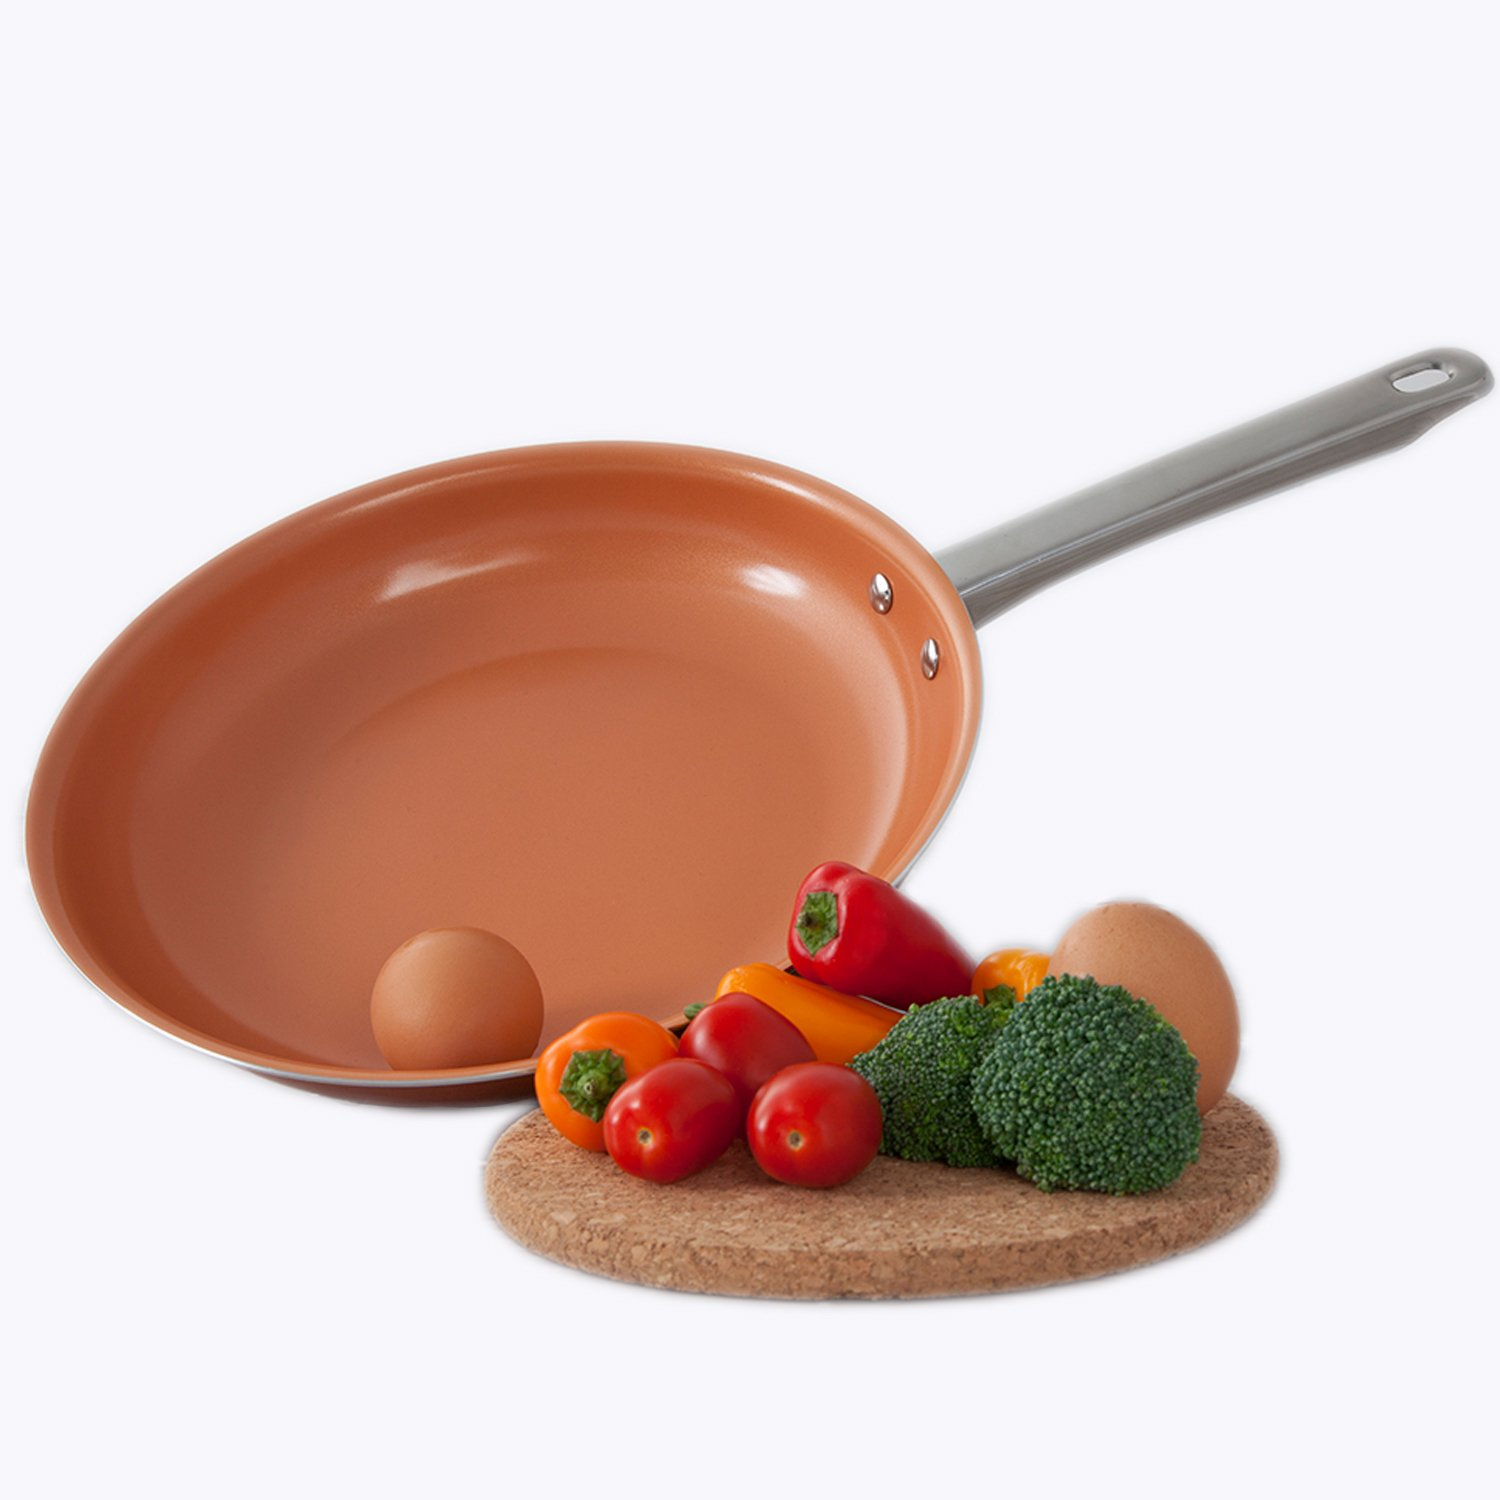 Healthy Chef's Copper Frying Pan With Nonstick Coating - Induction Frying Pan Oven Safe Copper Fry Pan (8 Inch)